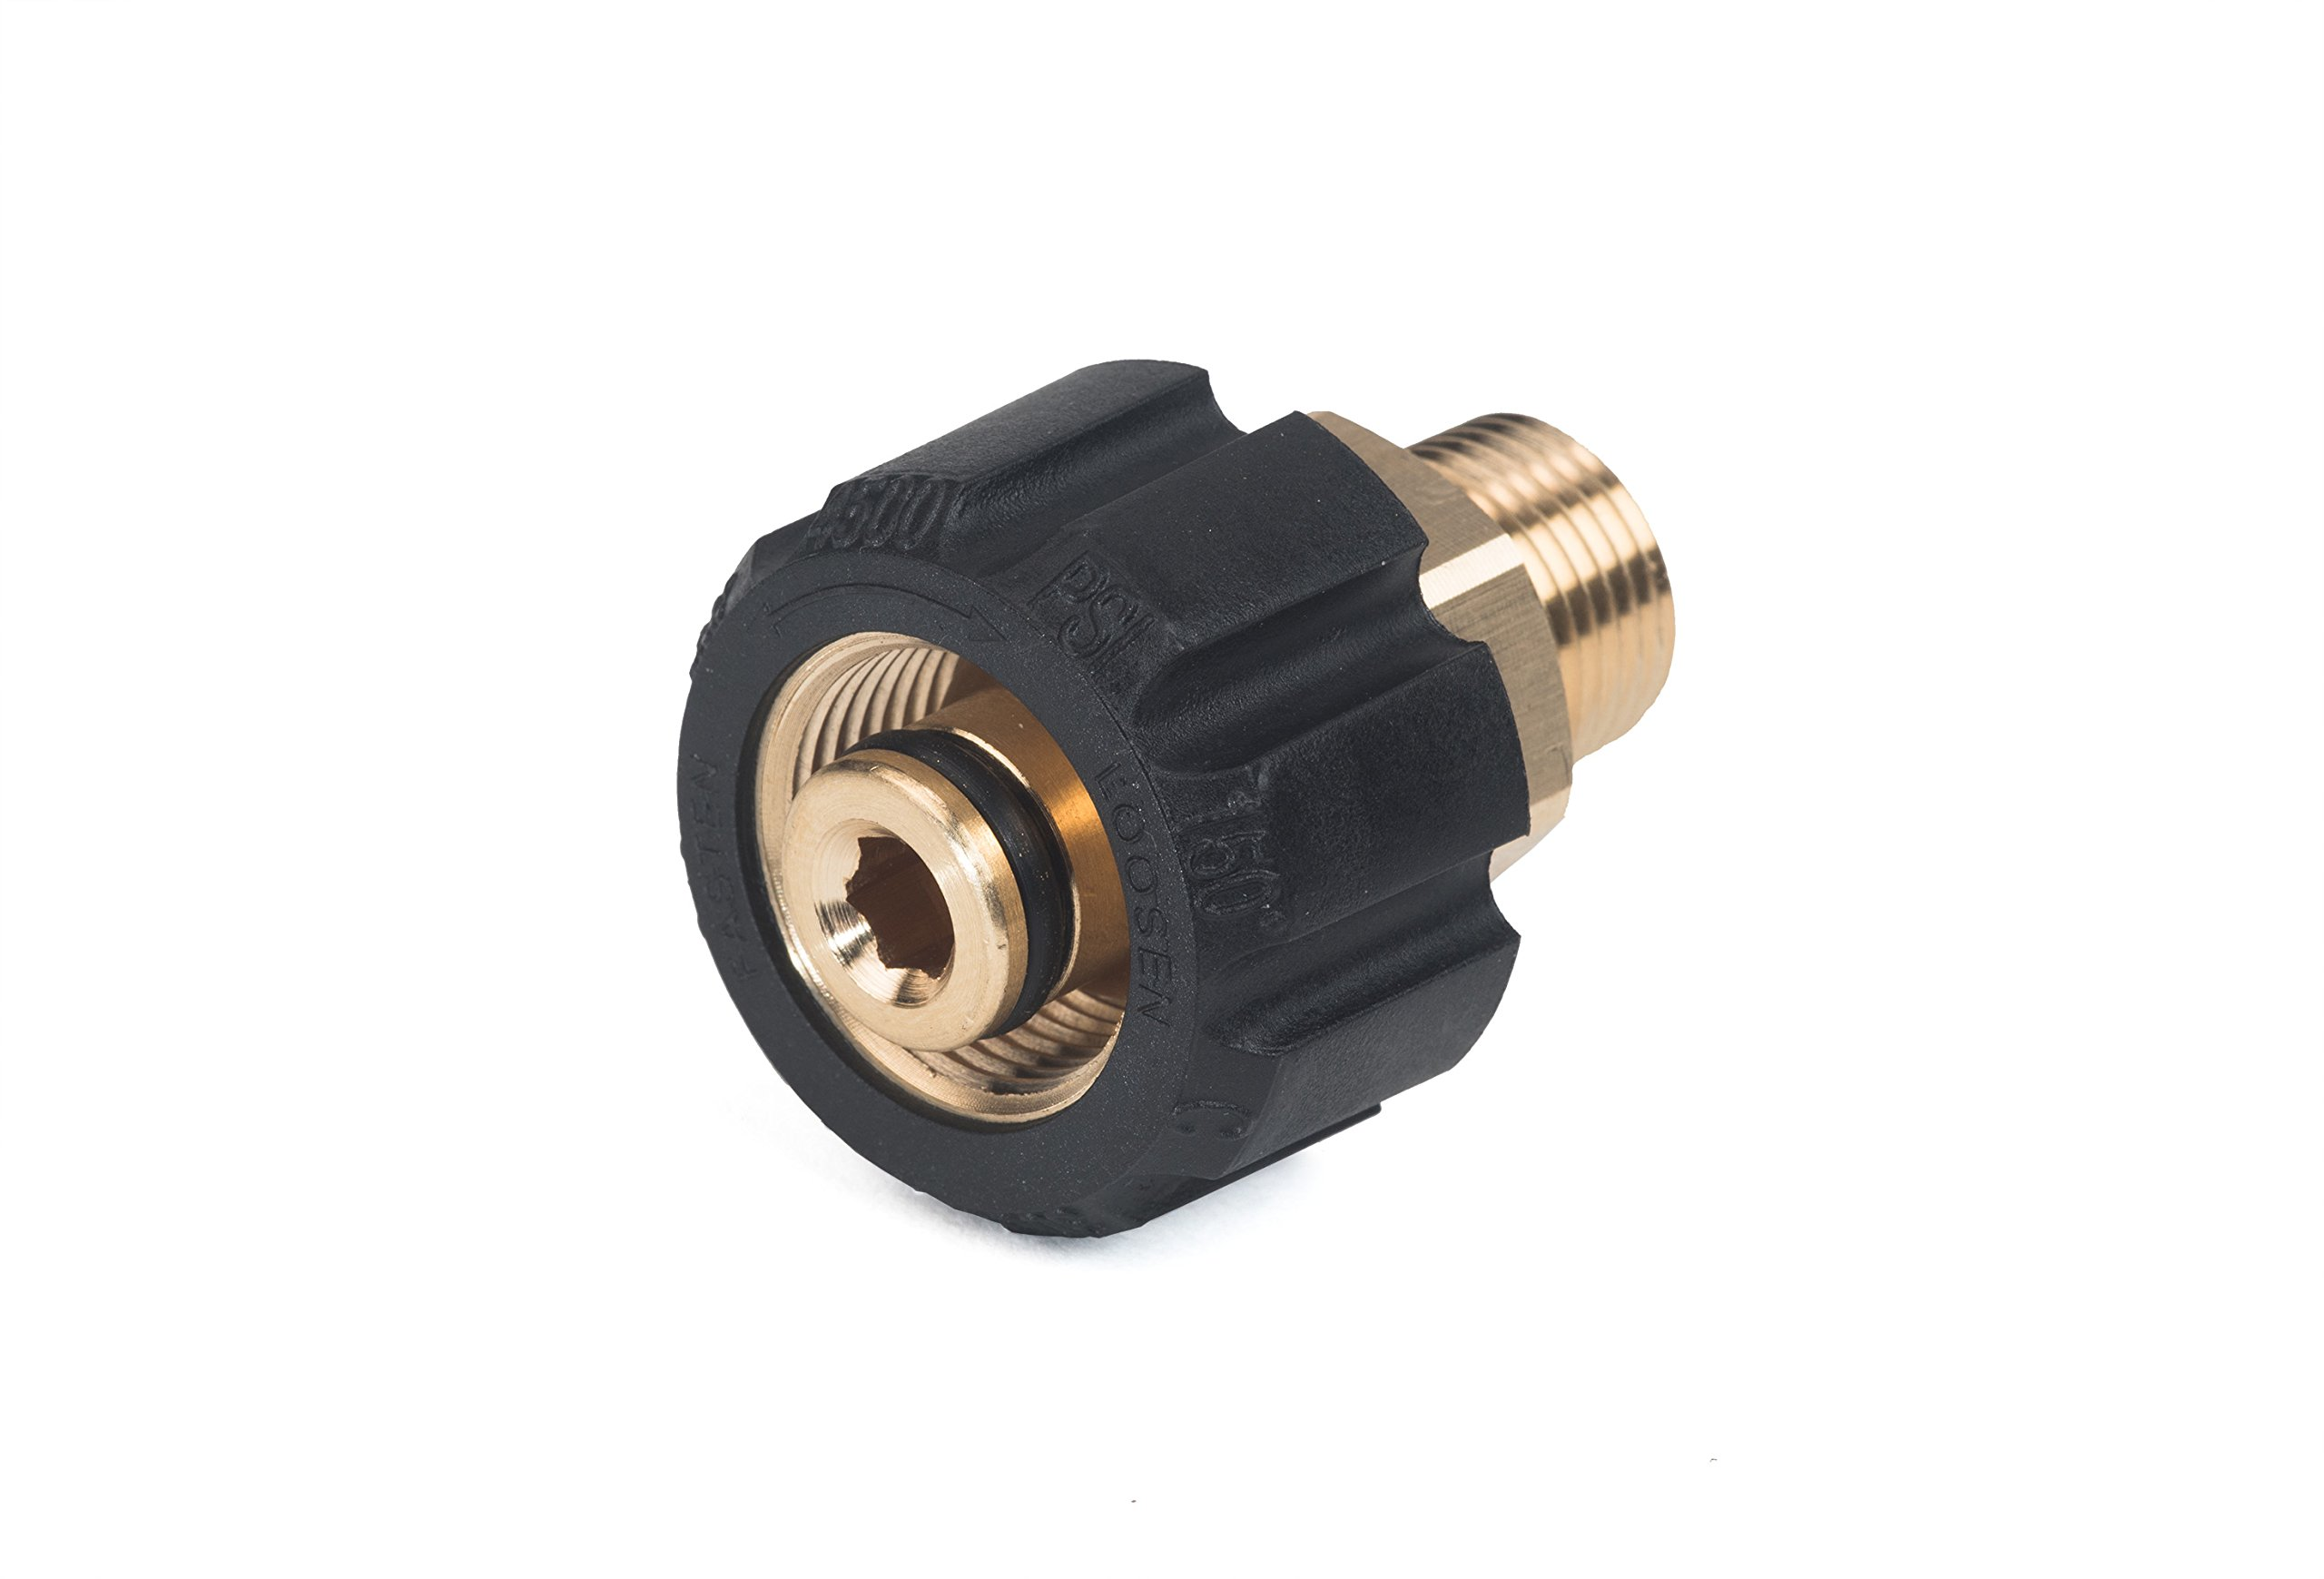 Karcher M22 3/8 Male Swivel Nut Replacement for Gas Pressure Washers